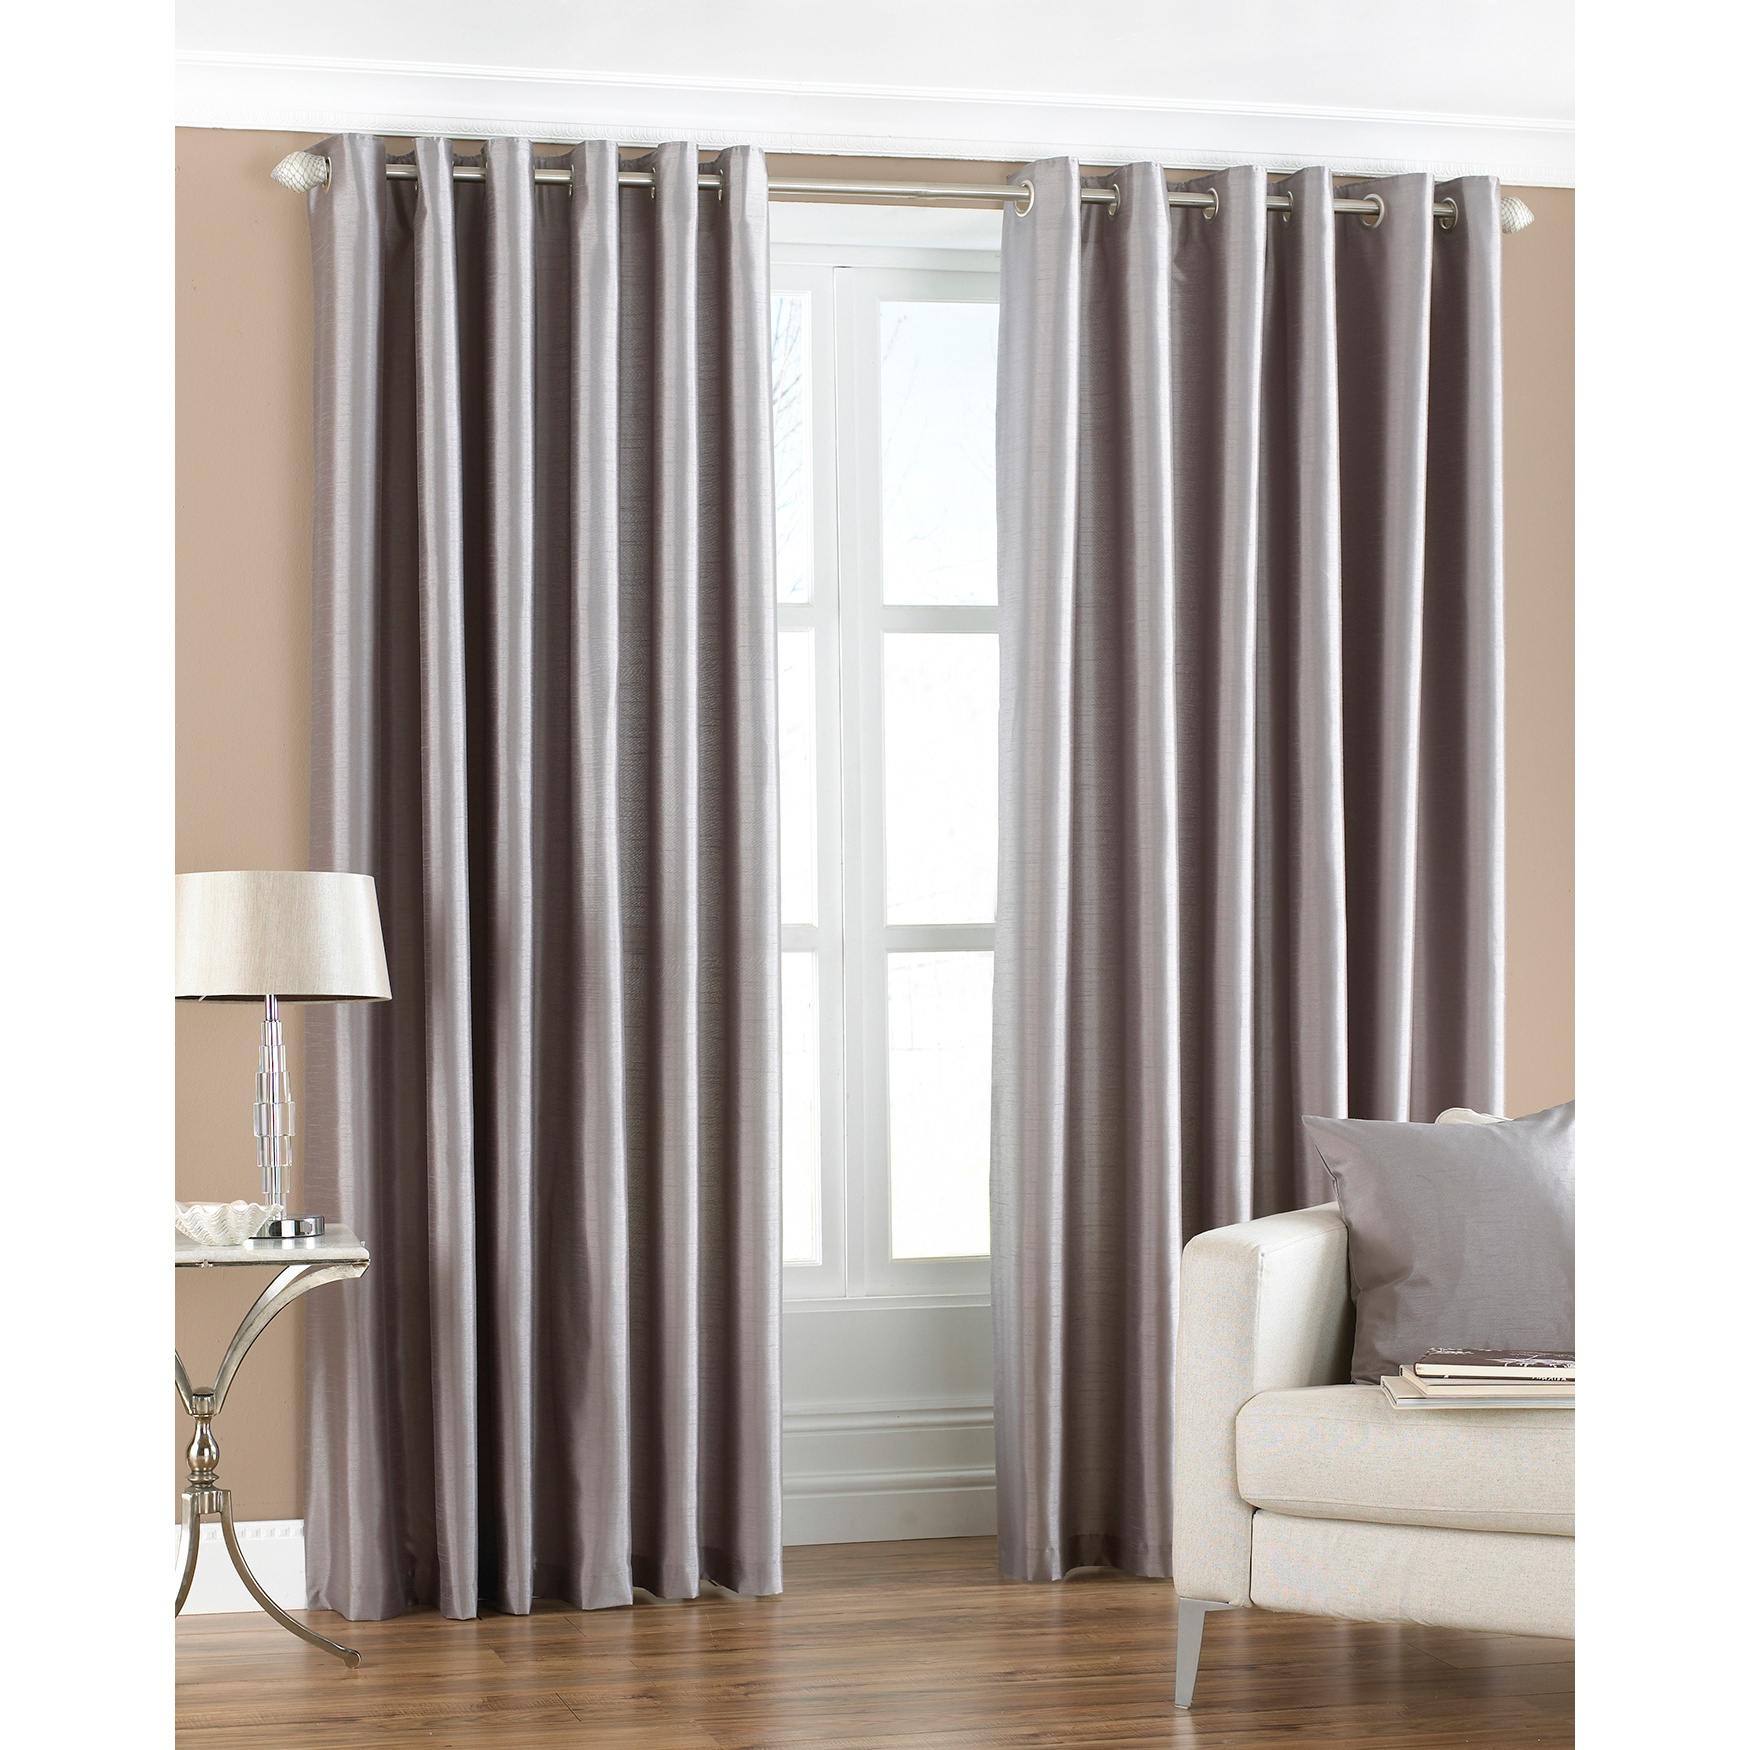 Riva home cortinas de anillas modelo fiji faux silk ebay for Anillas de cortinas